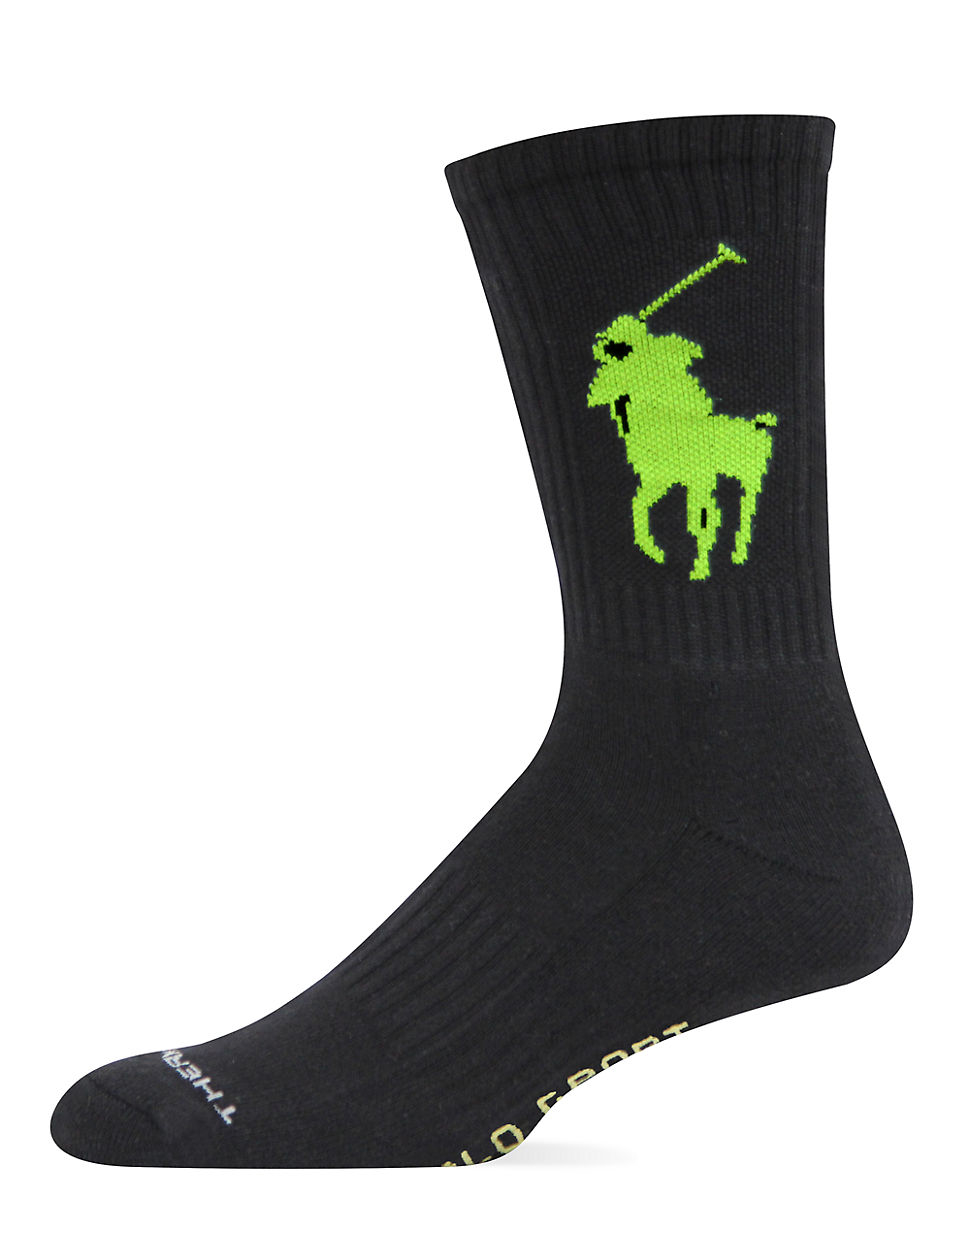 Polo Ralph Lauren socks are the finish to the well-stocked top drawer. You'll find a range of styles for work and workouts, in 3-packs to make stocking up easy. Polo Ralph Lauren swimwear is another of the designer's American success stories.